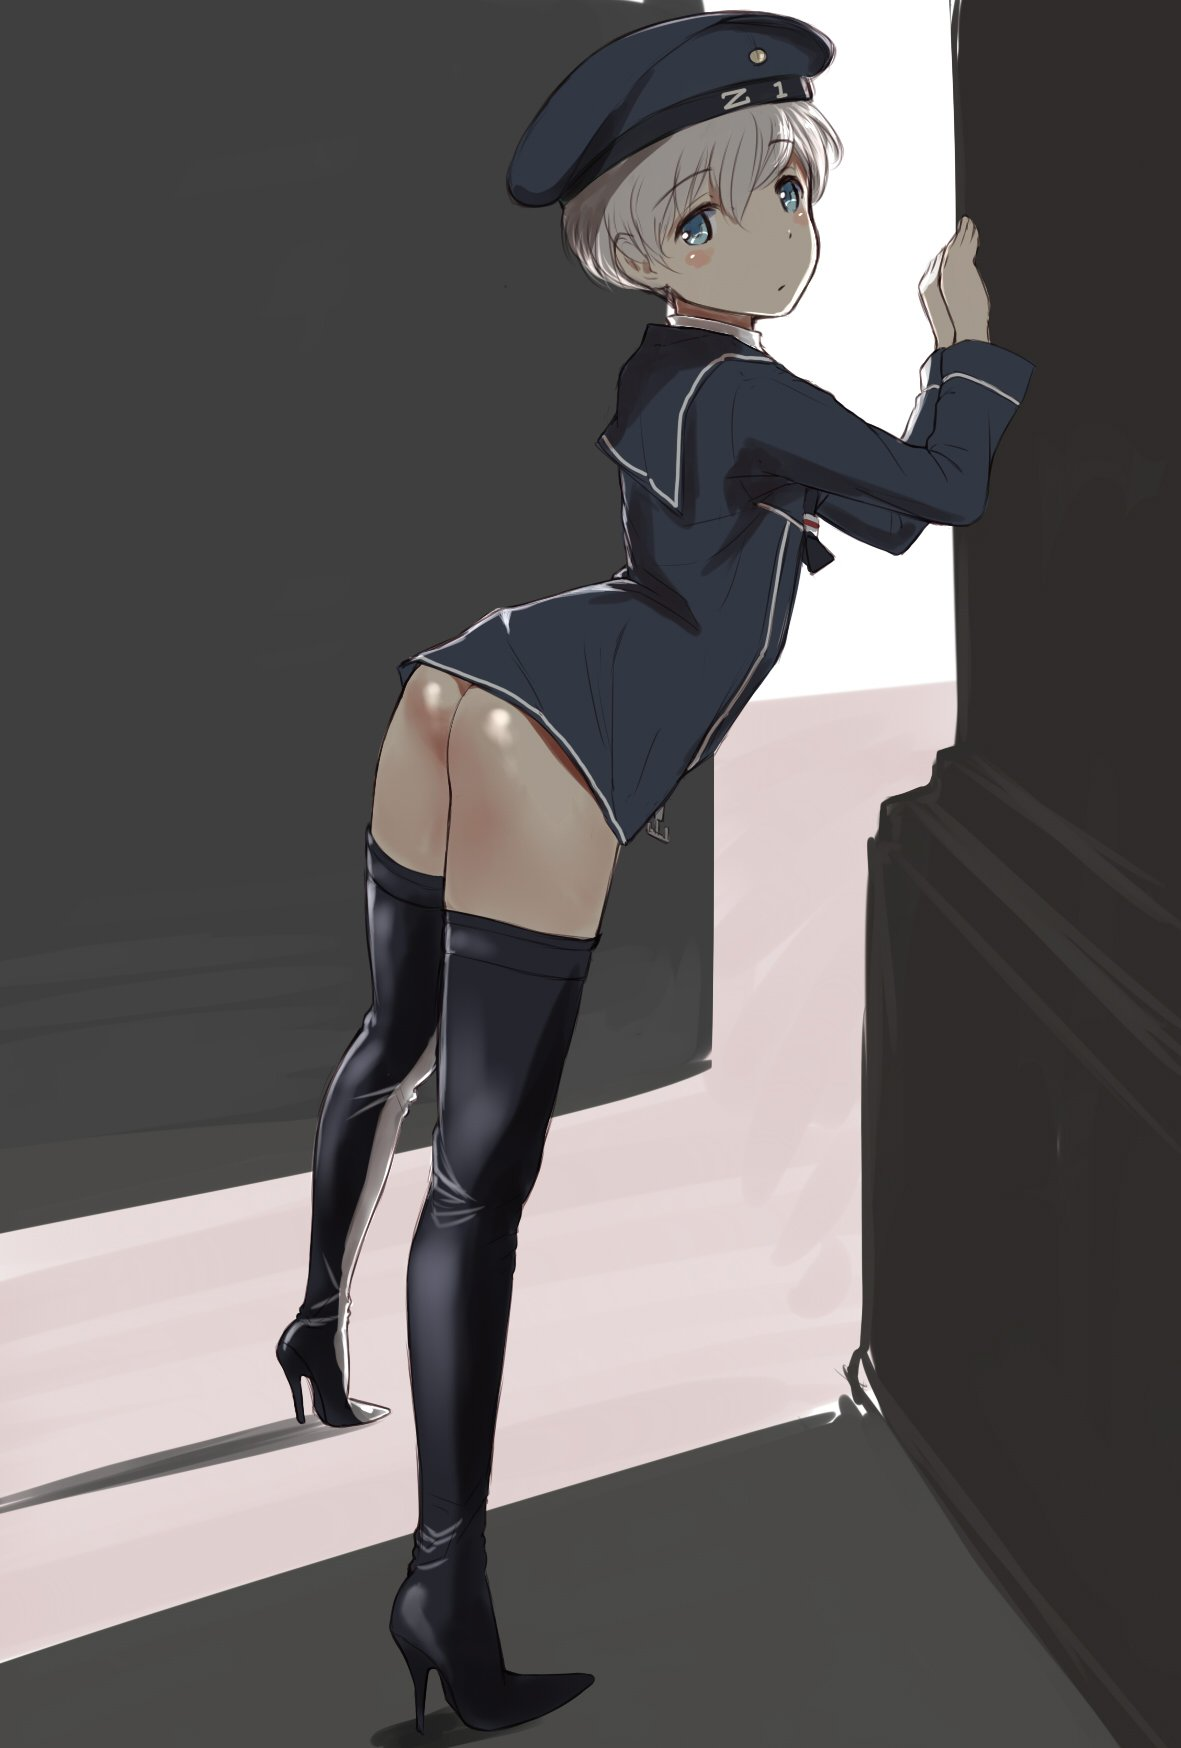 1girl against_wall alternate_legwear black_legwear blonde_hair blush boots dress german_clothes hat high_heel_boots high_heels highres kantai_collection looking_at_viewer microdress military military_hat military_uniform sailor_collar sailor_dress sailor_hat shiny shiny_skin short_hair solo stiletto_heels thigh-highs thigh_boots uniform wa_(genryusui) z1_leberecht_maass_(kantai_collection)